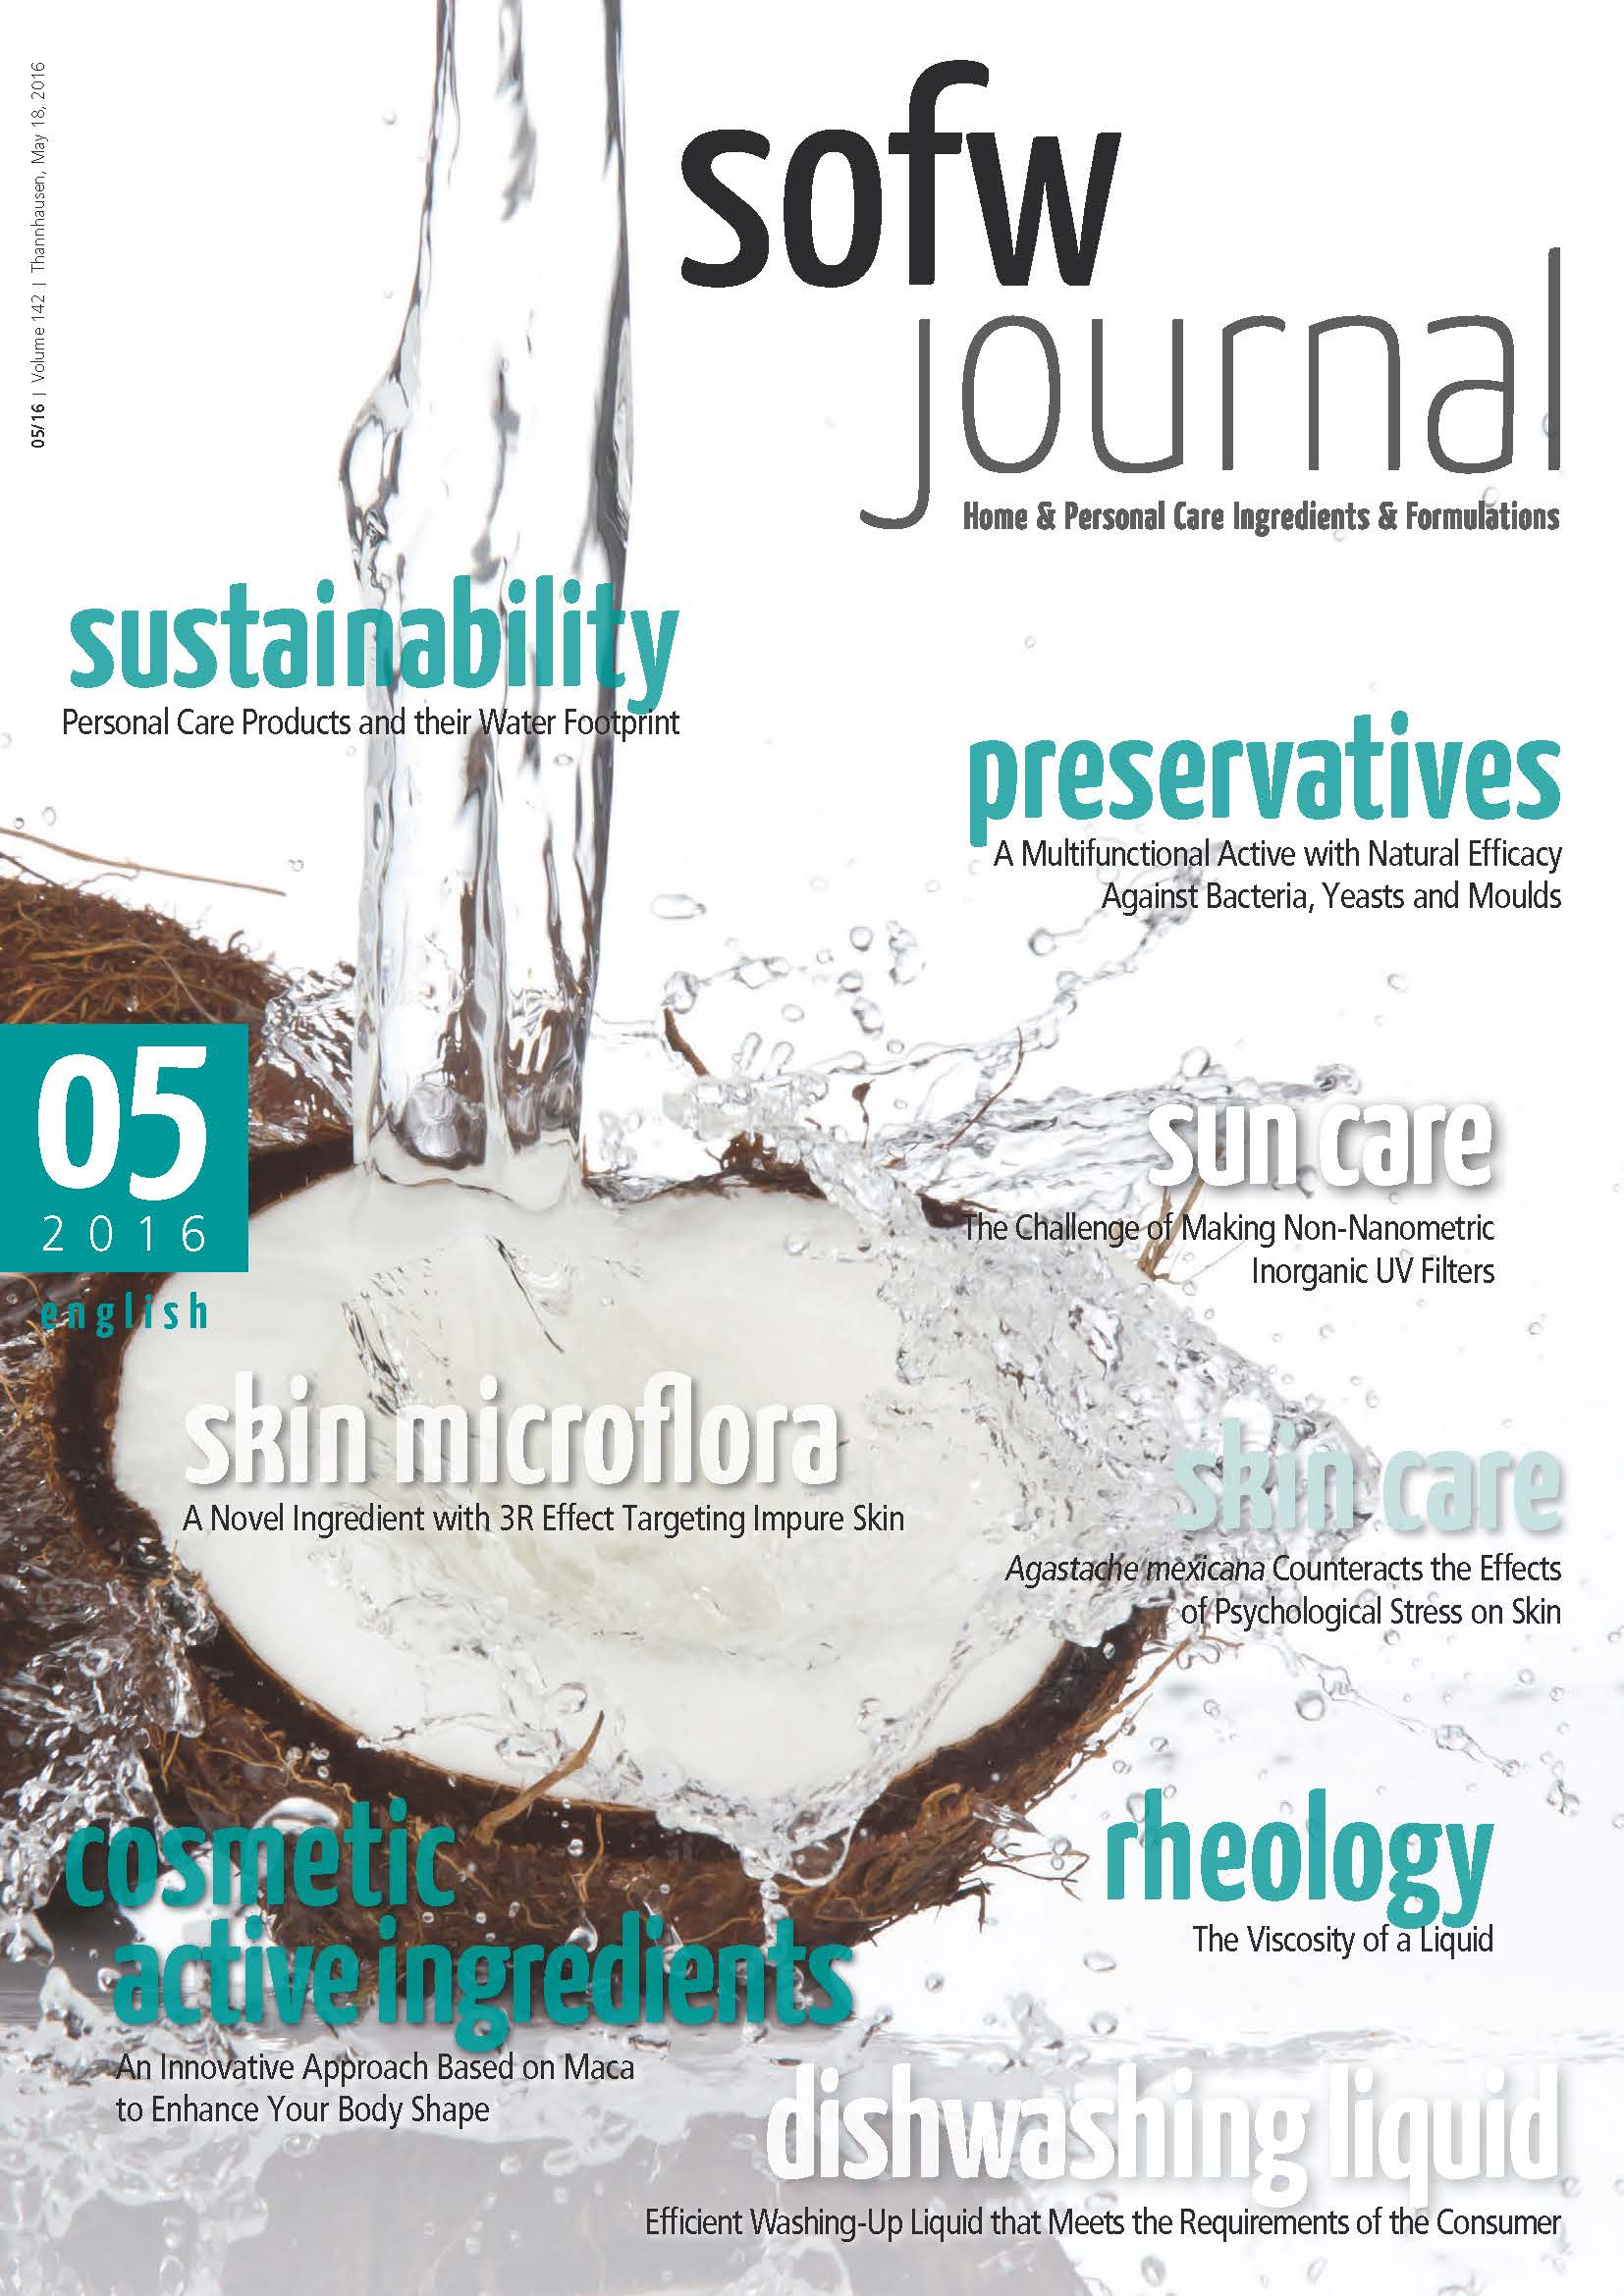 sofwjournal_en_2016_05_cover